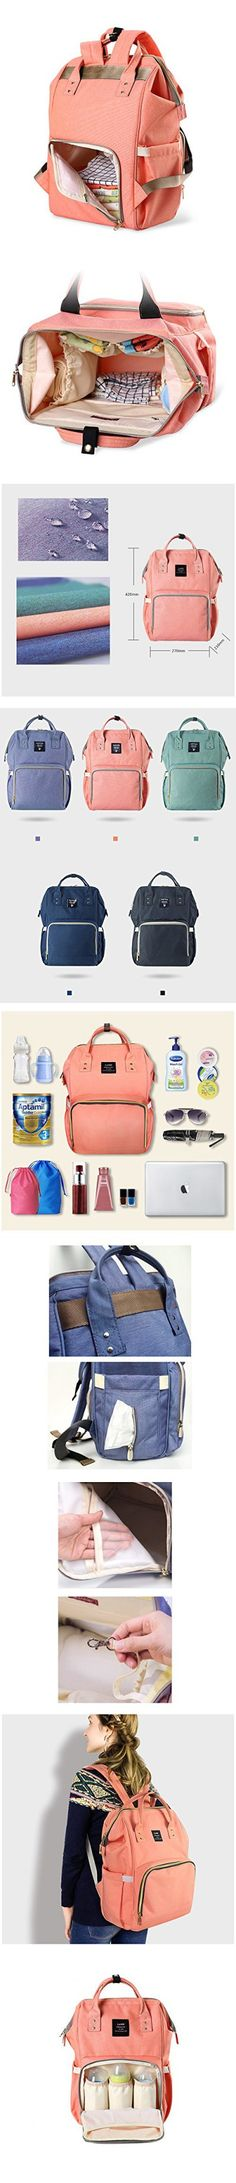 Huluwa Diaper Bag Multi-Function Waterproof Travel Backpack Nappy Bags for Baby Care, Large Capacity, Stylish and Durable, Orange